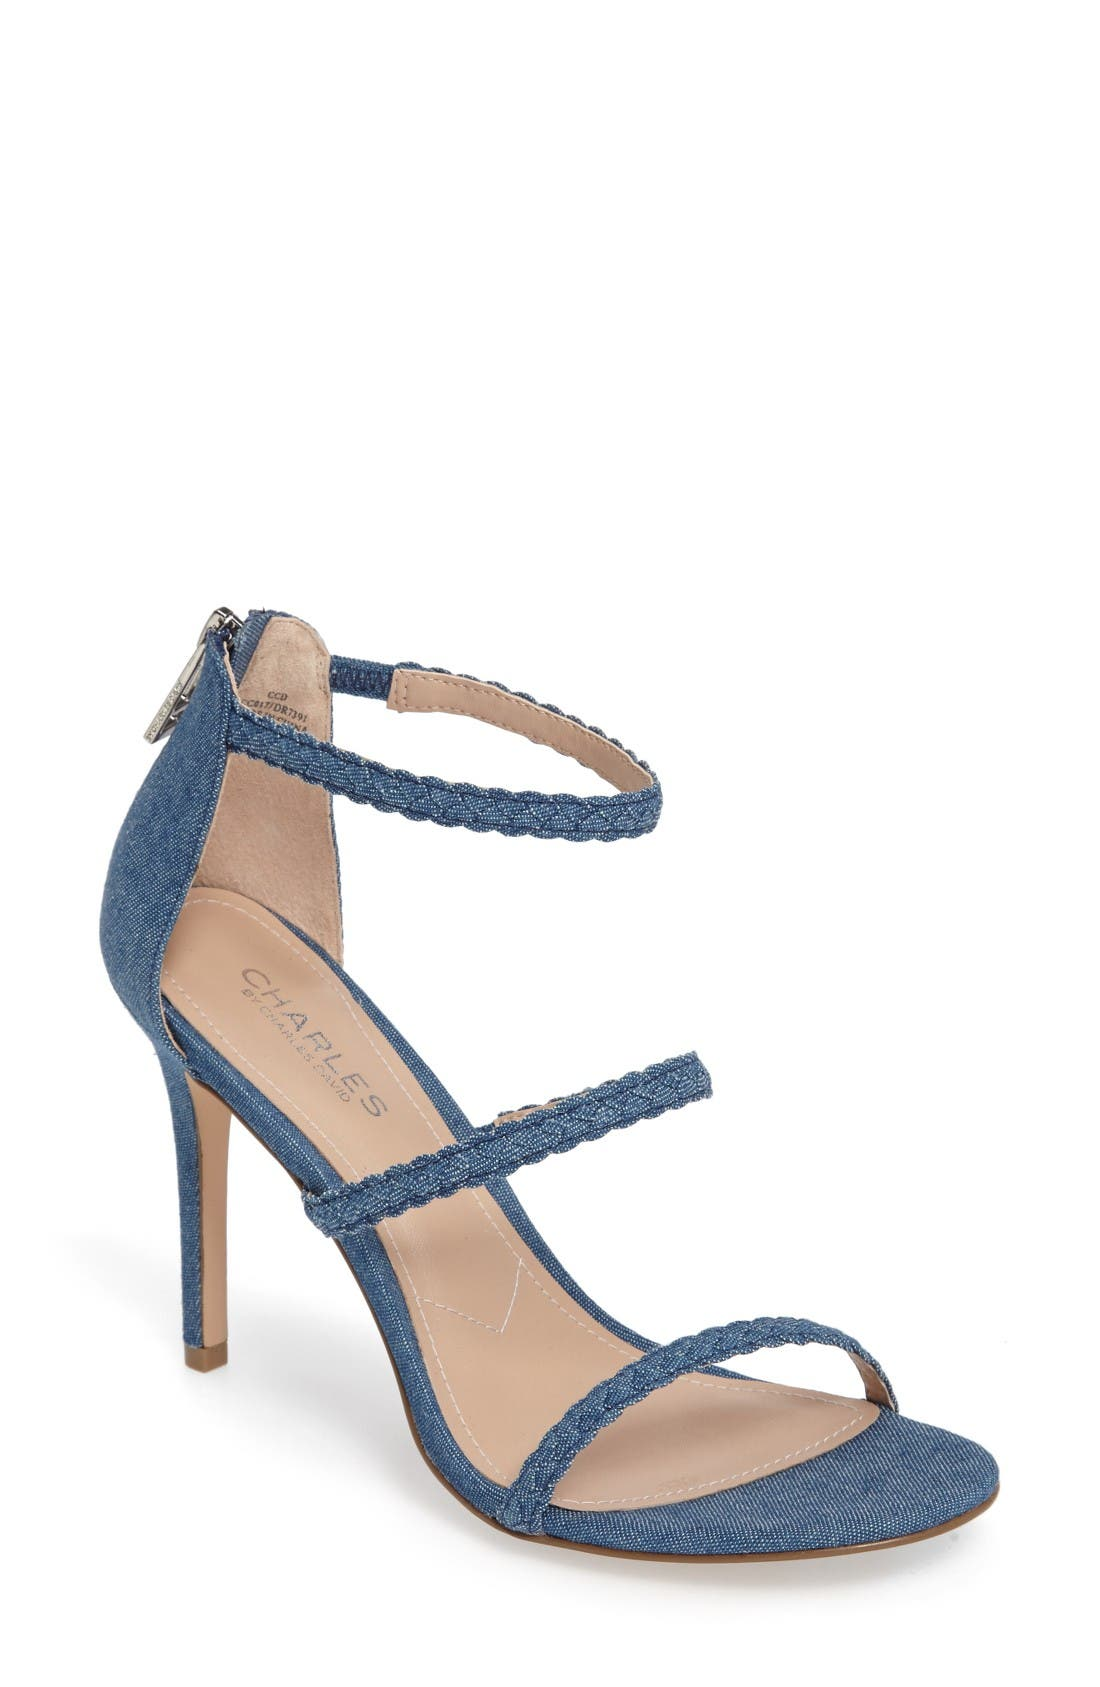 Alternate Image 1 Selected - Charles by Charles David Ria Strappy Sandal (Women)